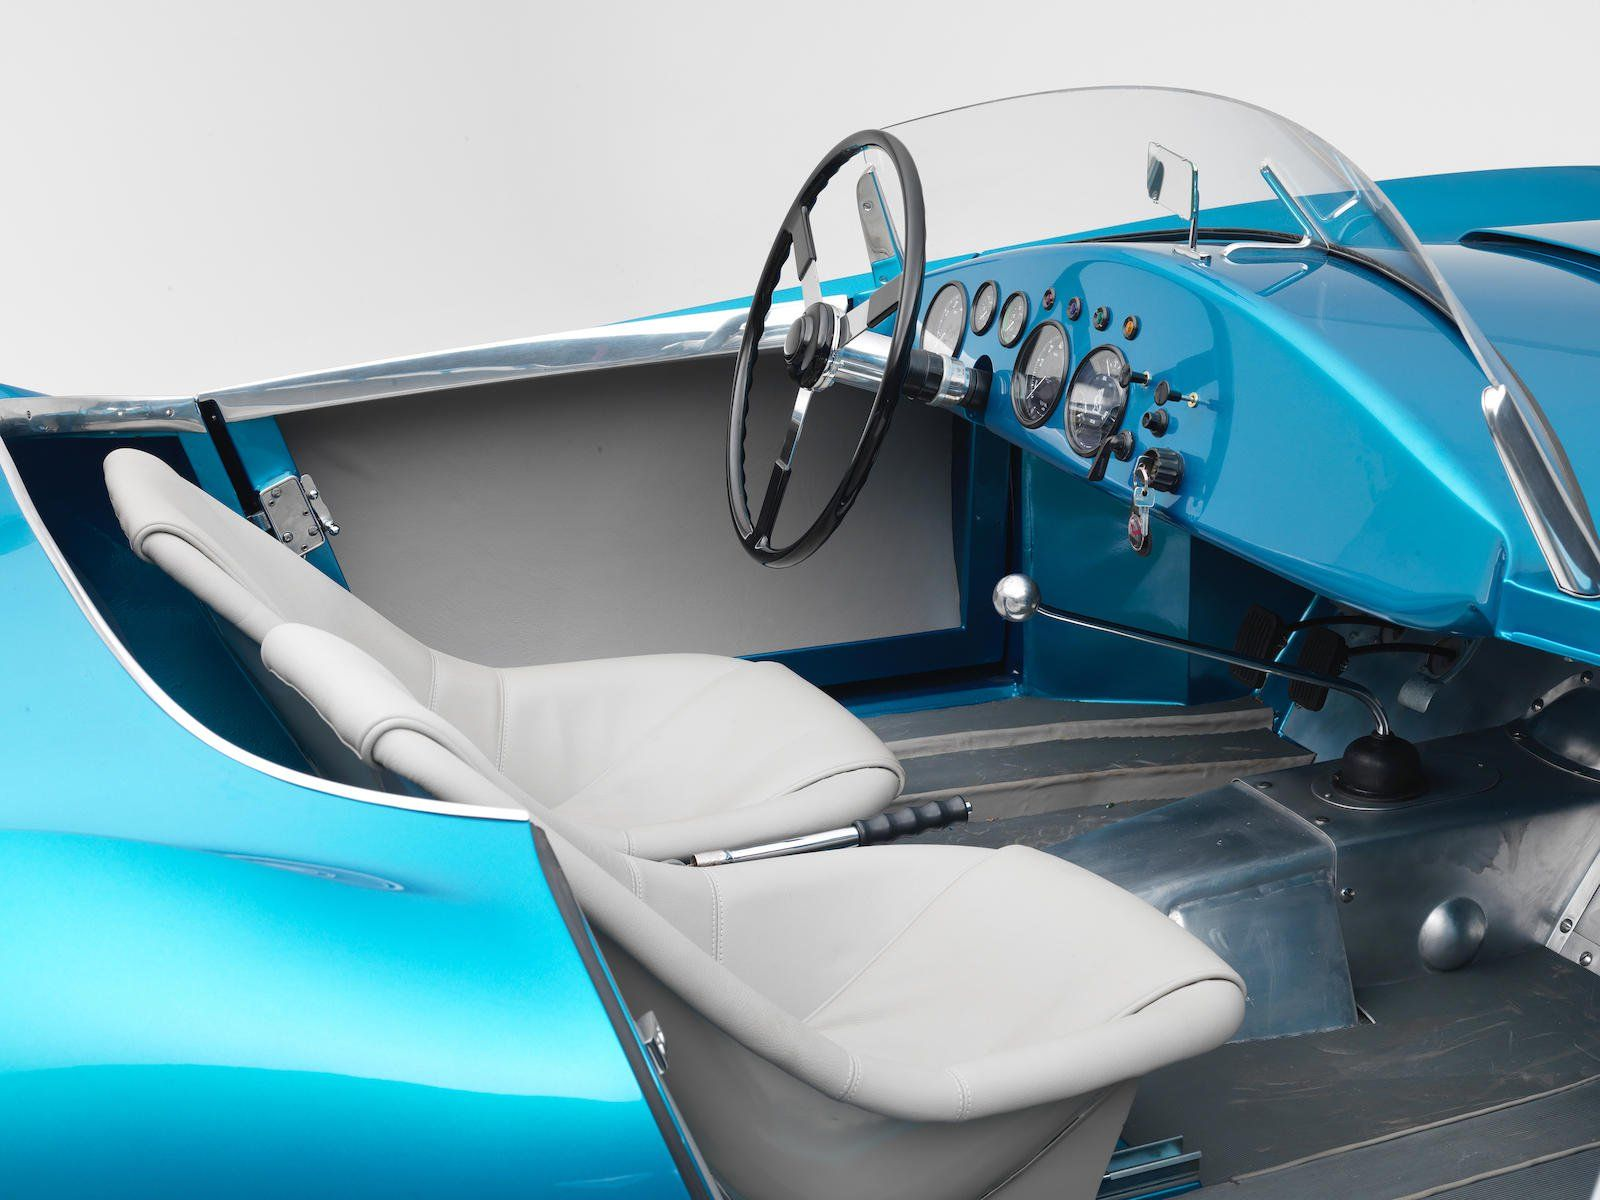 Thiết kế cabin xe Arnold-Bristol Bolide Roadster 1954